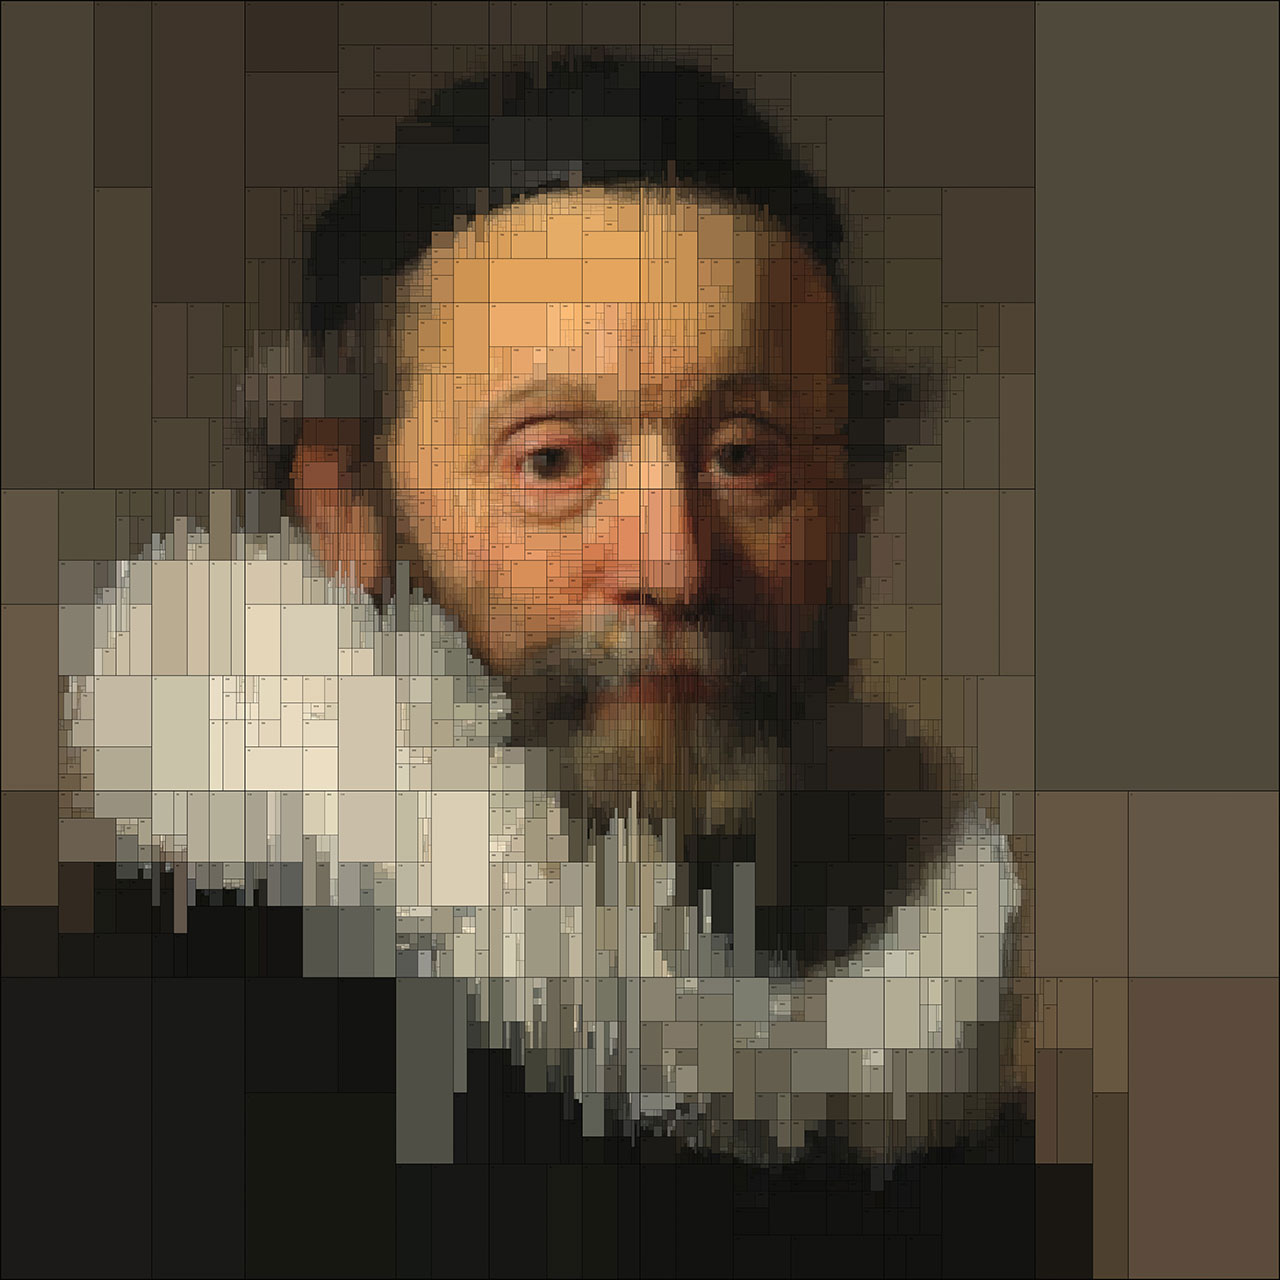 Johannes (detail), from Portraits series by Dimitris Ladopoulos (Original painting - Portrait of Johannes Wtenbogaert by Rembrandt Harmensz van Rijn, 1633).